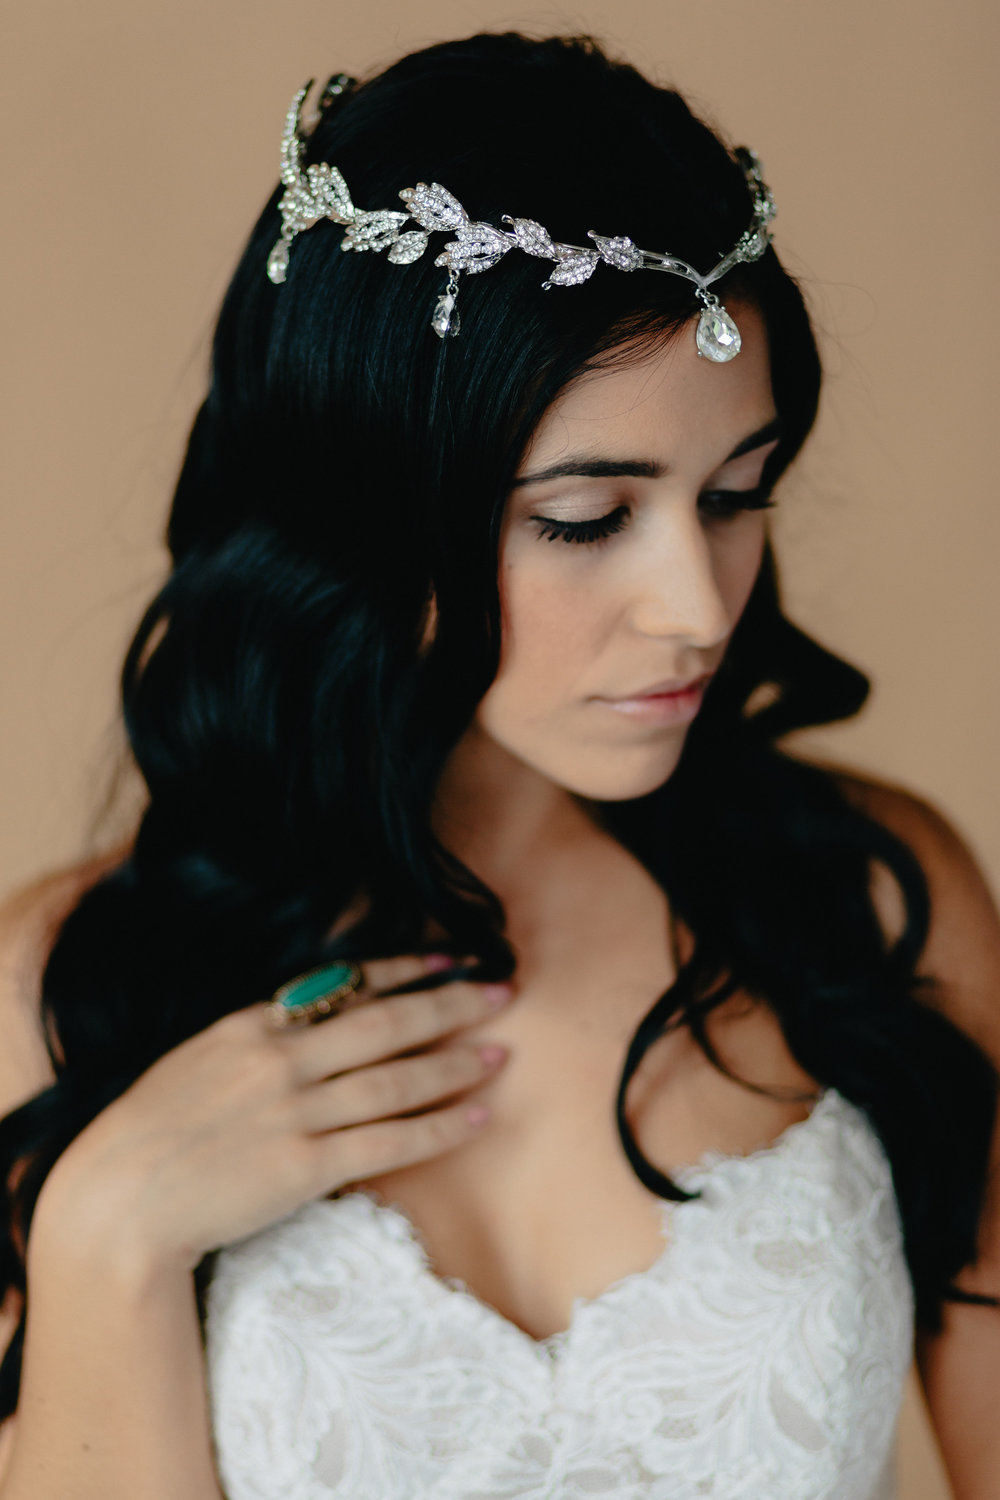 Headpiece: Hair Comes the Bride | Earring: Liz Law | Ring: Contemporary Find | Dress: Bel Fiore Bridal, Essence of Australia | Hair & Makeup: Corianne Elizabeth Beauty | Photography: Michelle Scott Photography